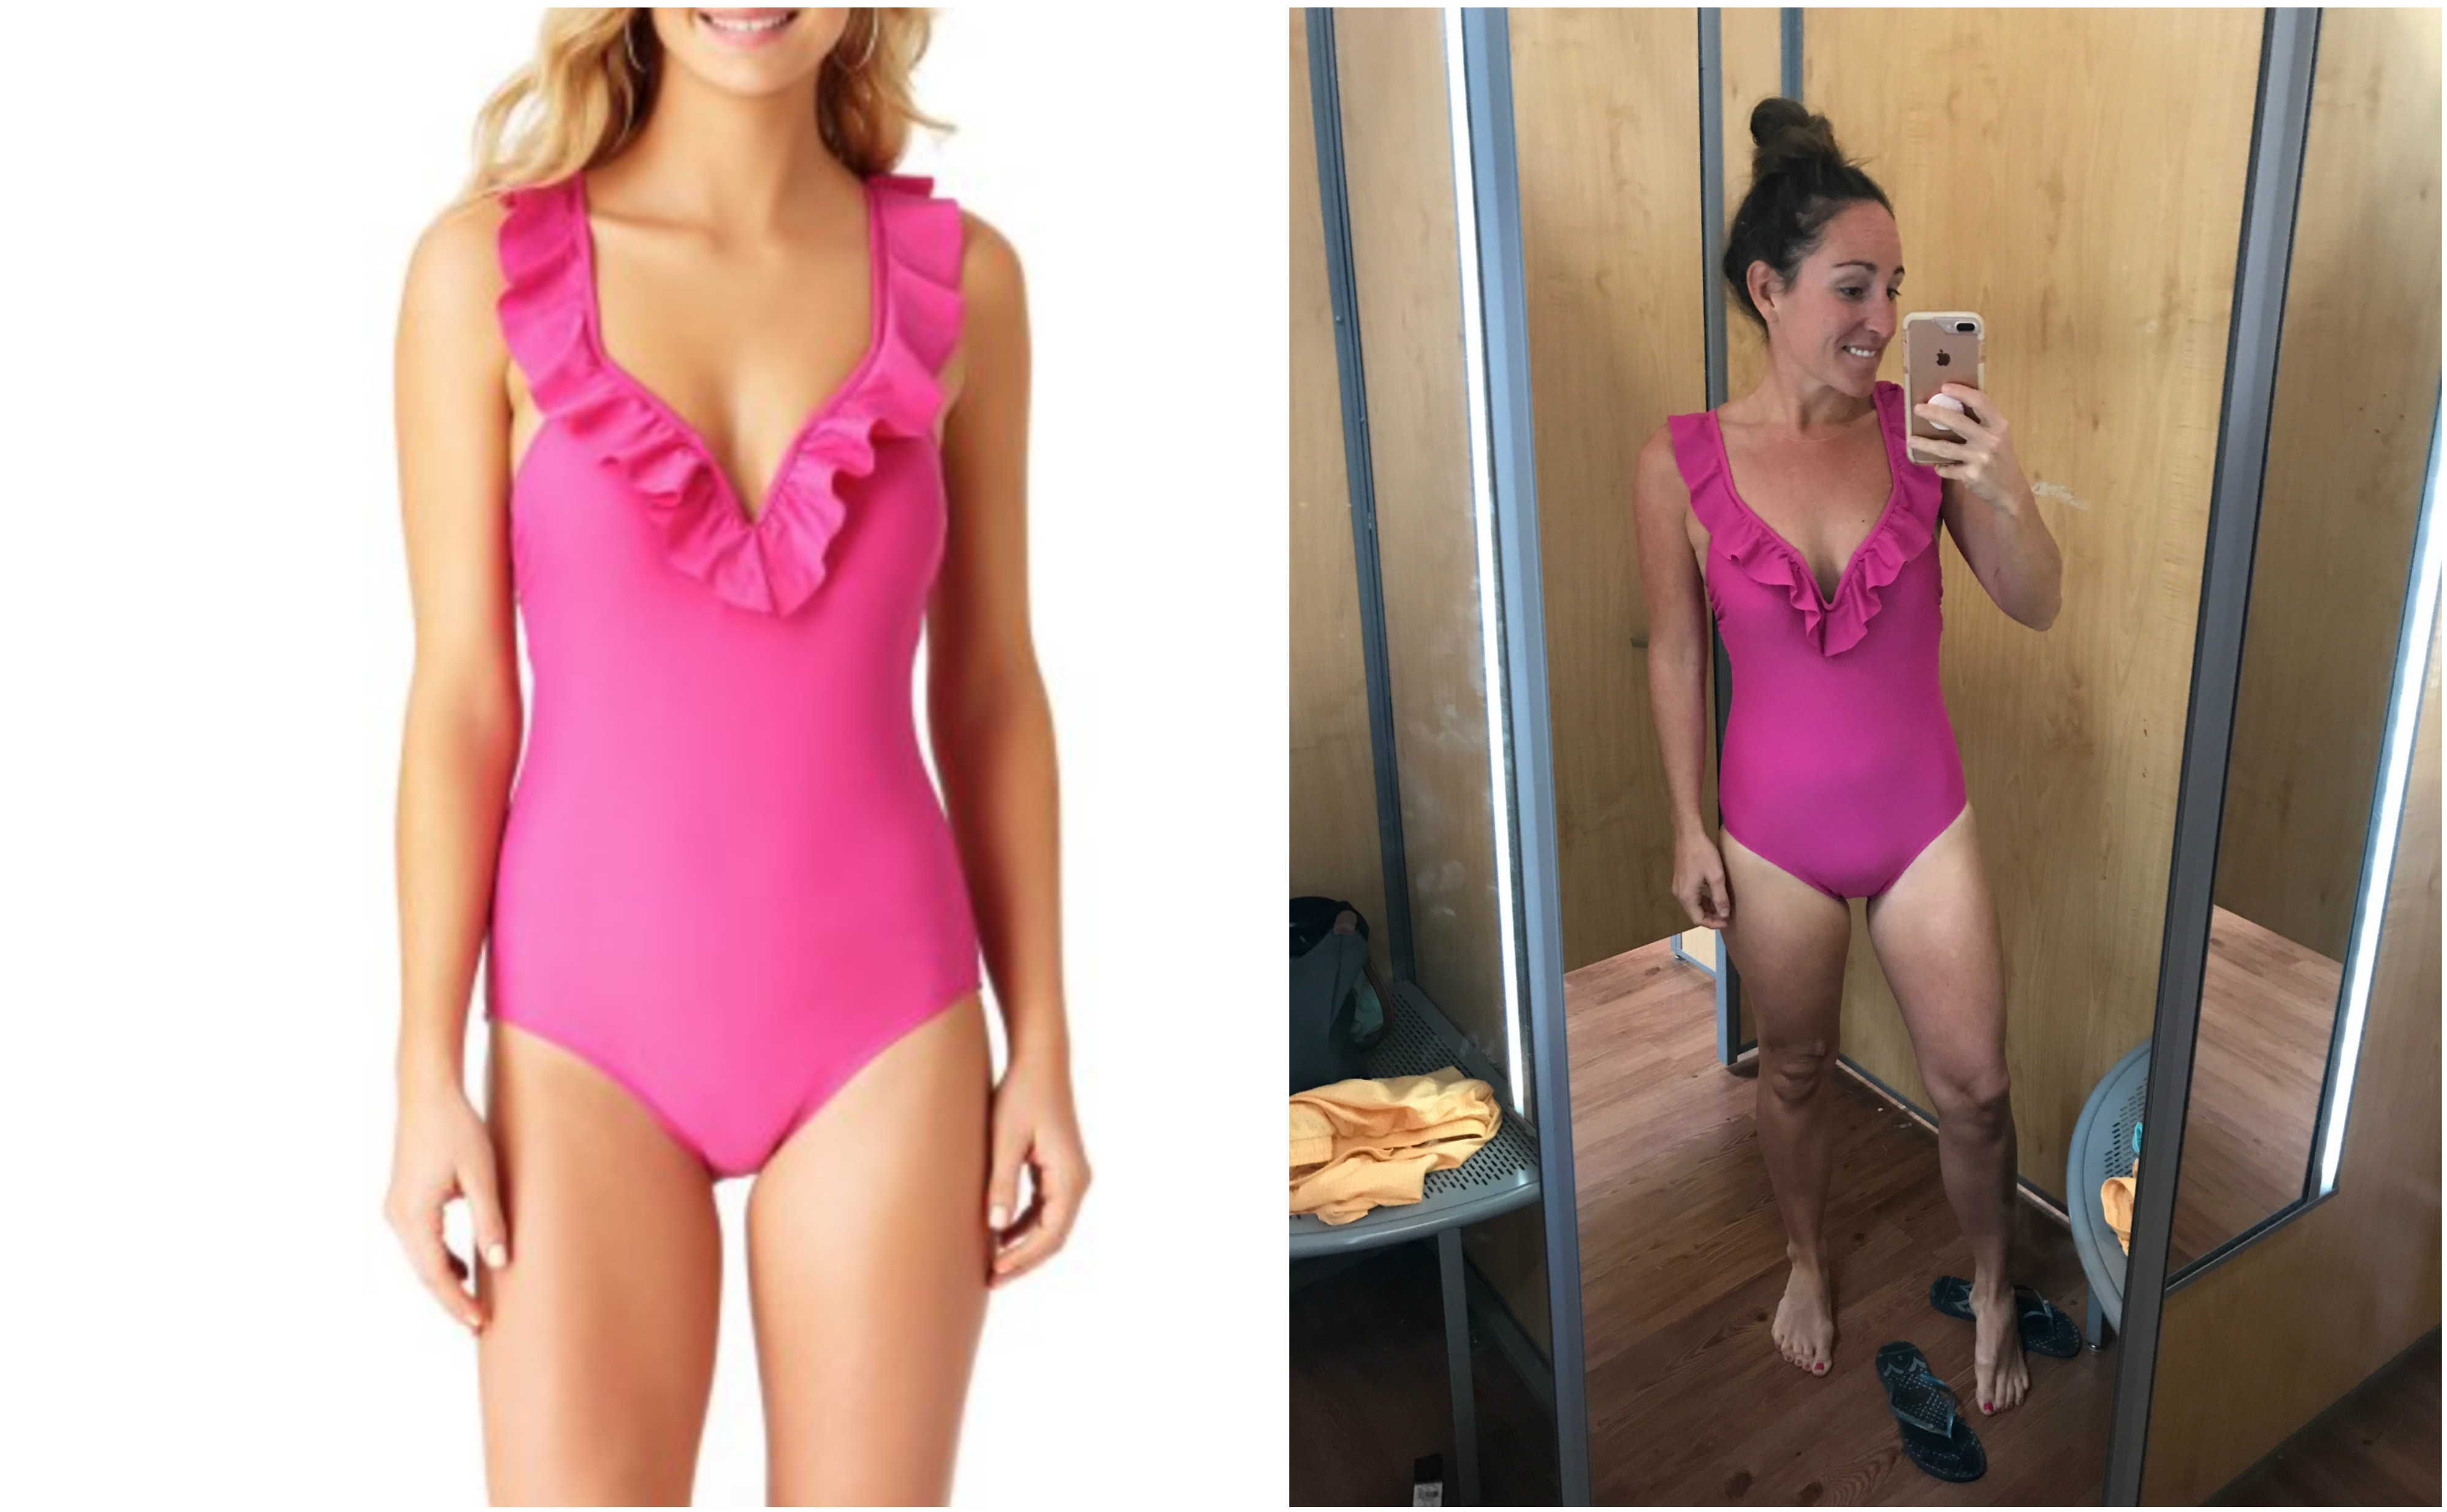 Walmart Pink Swimsuit- The Best Places To Buy Swimsuits - Summer Swimwear - Best Swimwear - Best Swimwear To Buy Online - Flattering Swimsuits Guide - Communikait by Kait Hanson